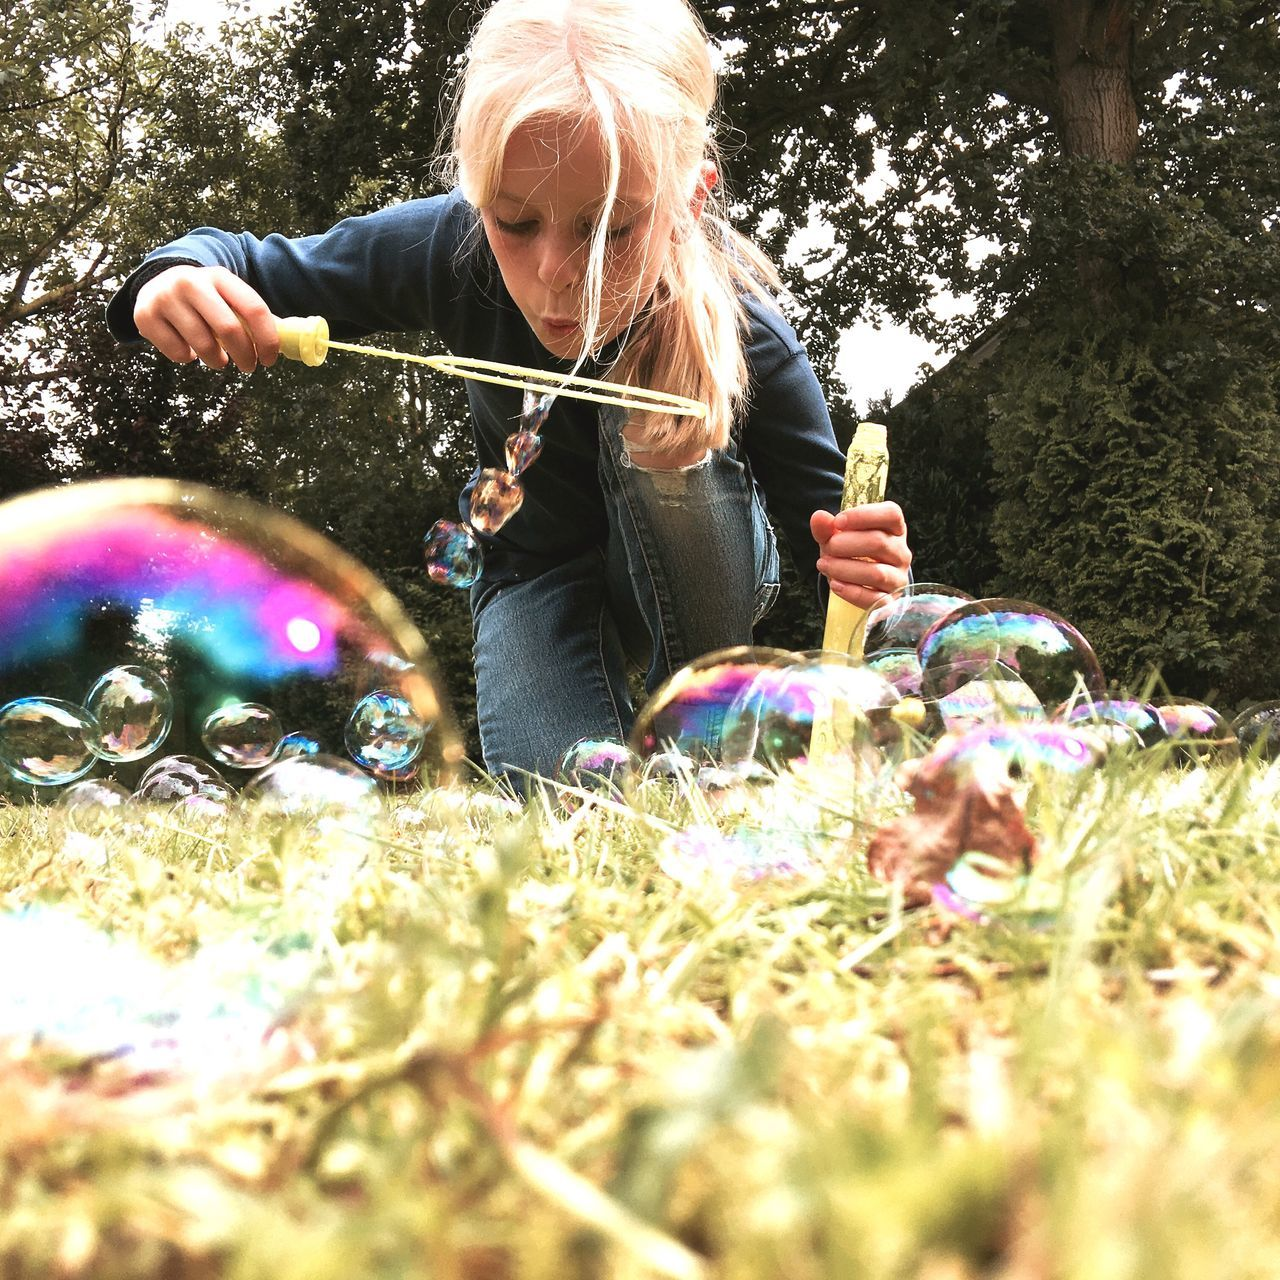 Girl Blowing Bubbles From Wand At Park